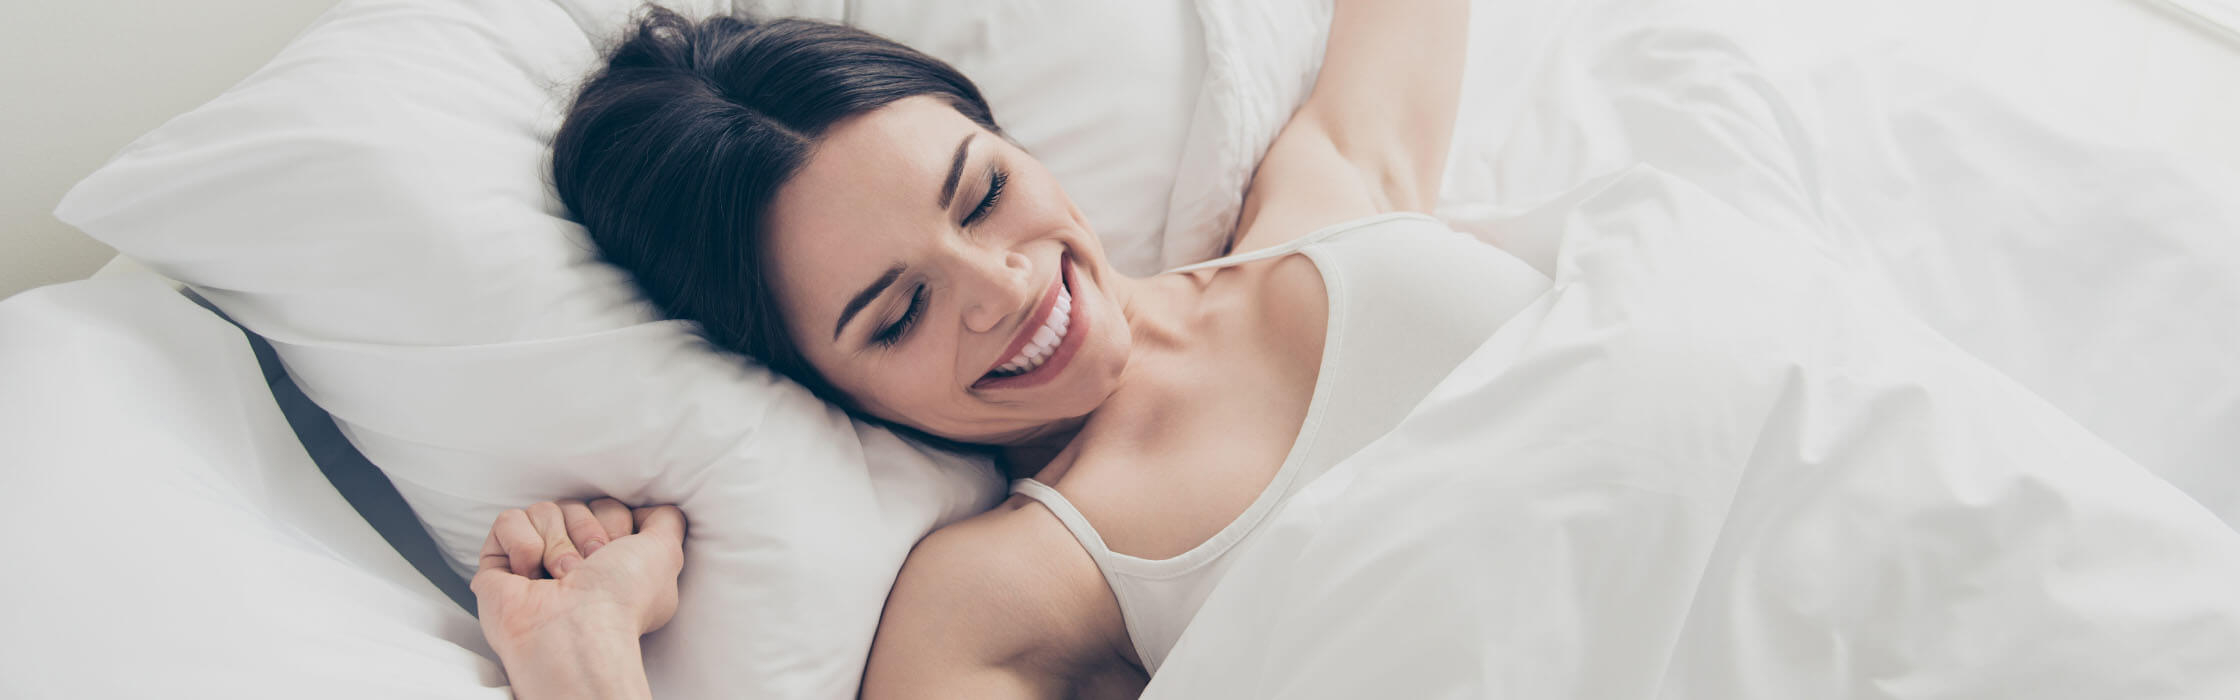 A woman waking up smiling in bed